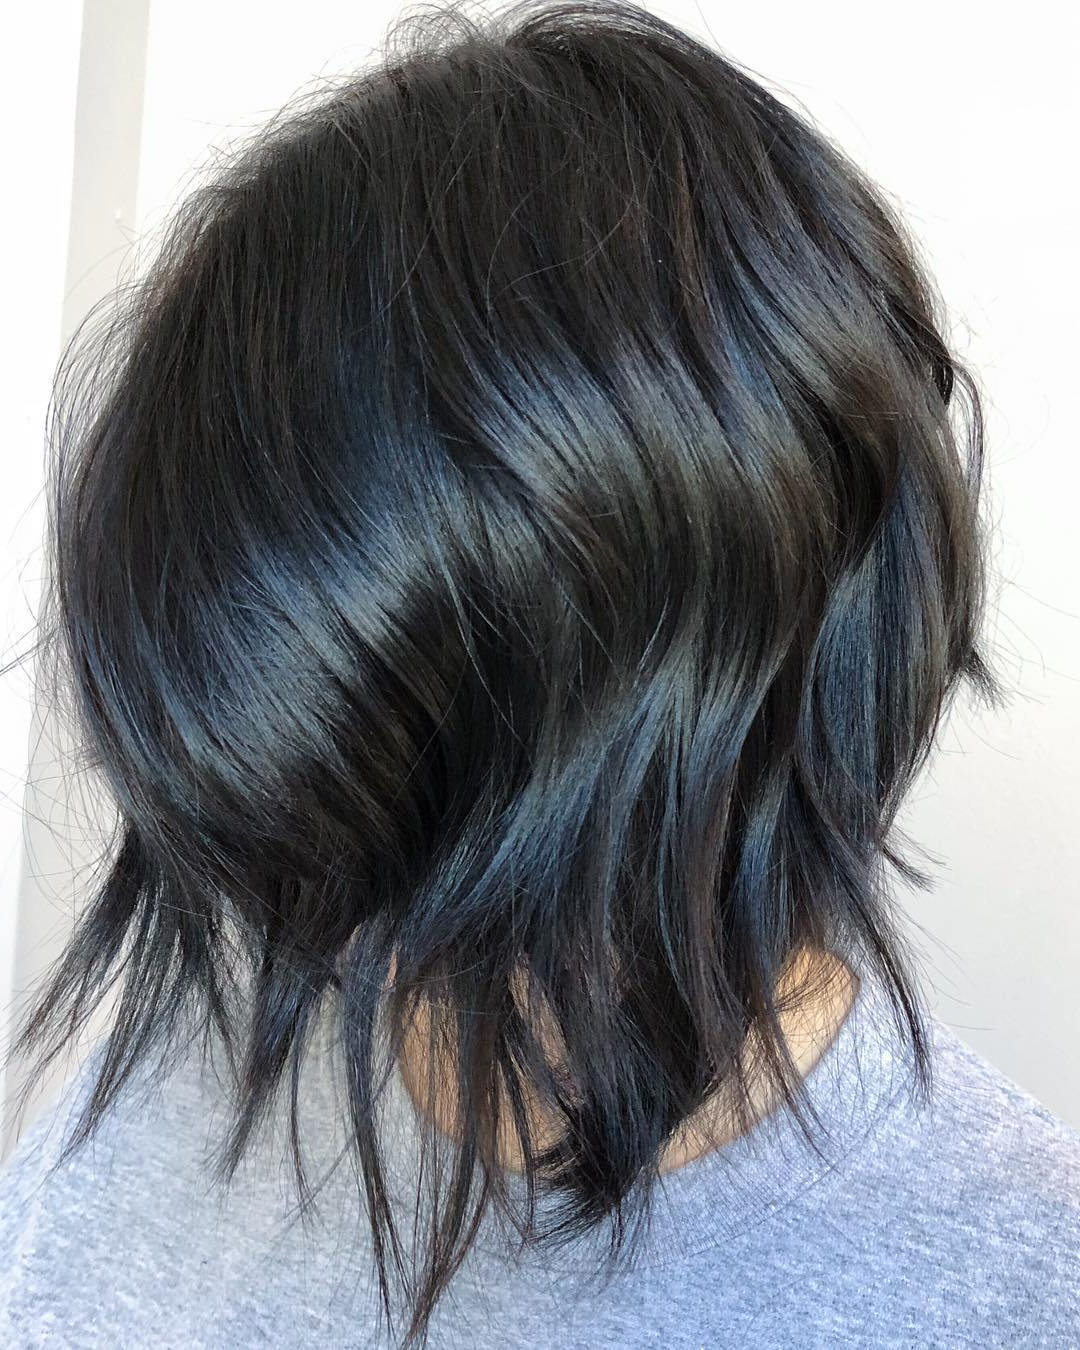 50 Inverted Bob Haircuts That Are Uber Fashionable – Hair Inside Short Chocolate Bob Hairstyles With Feathered Layers (View 16 of 20)